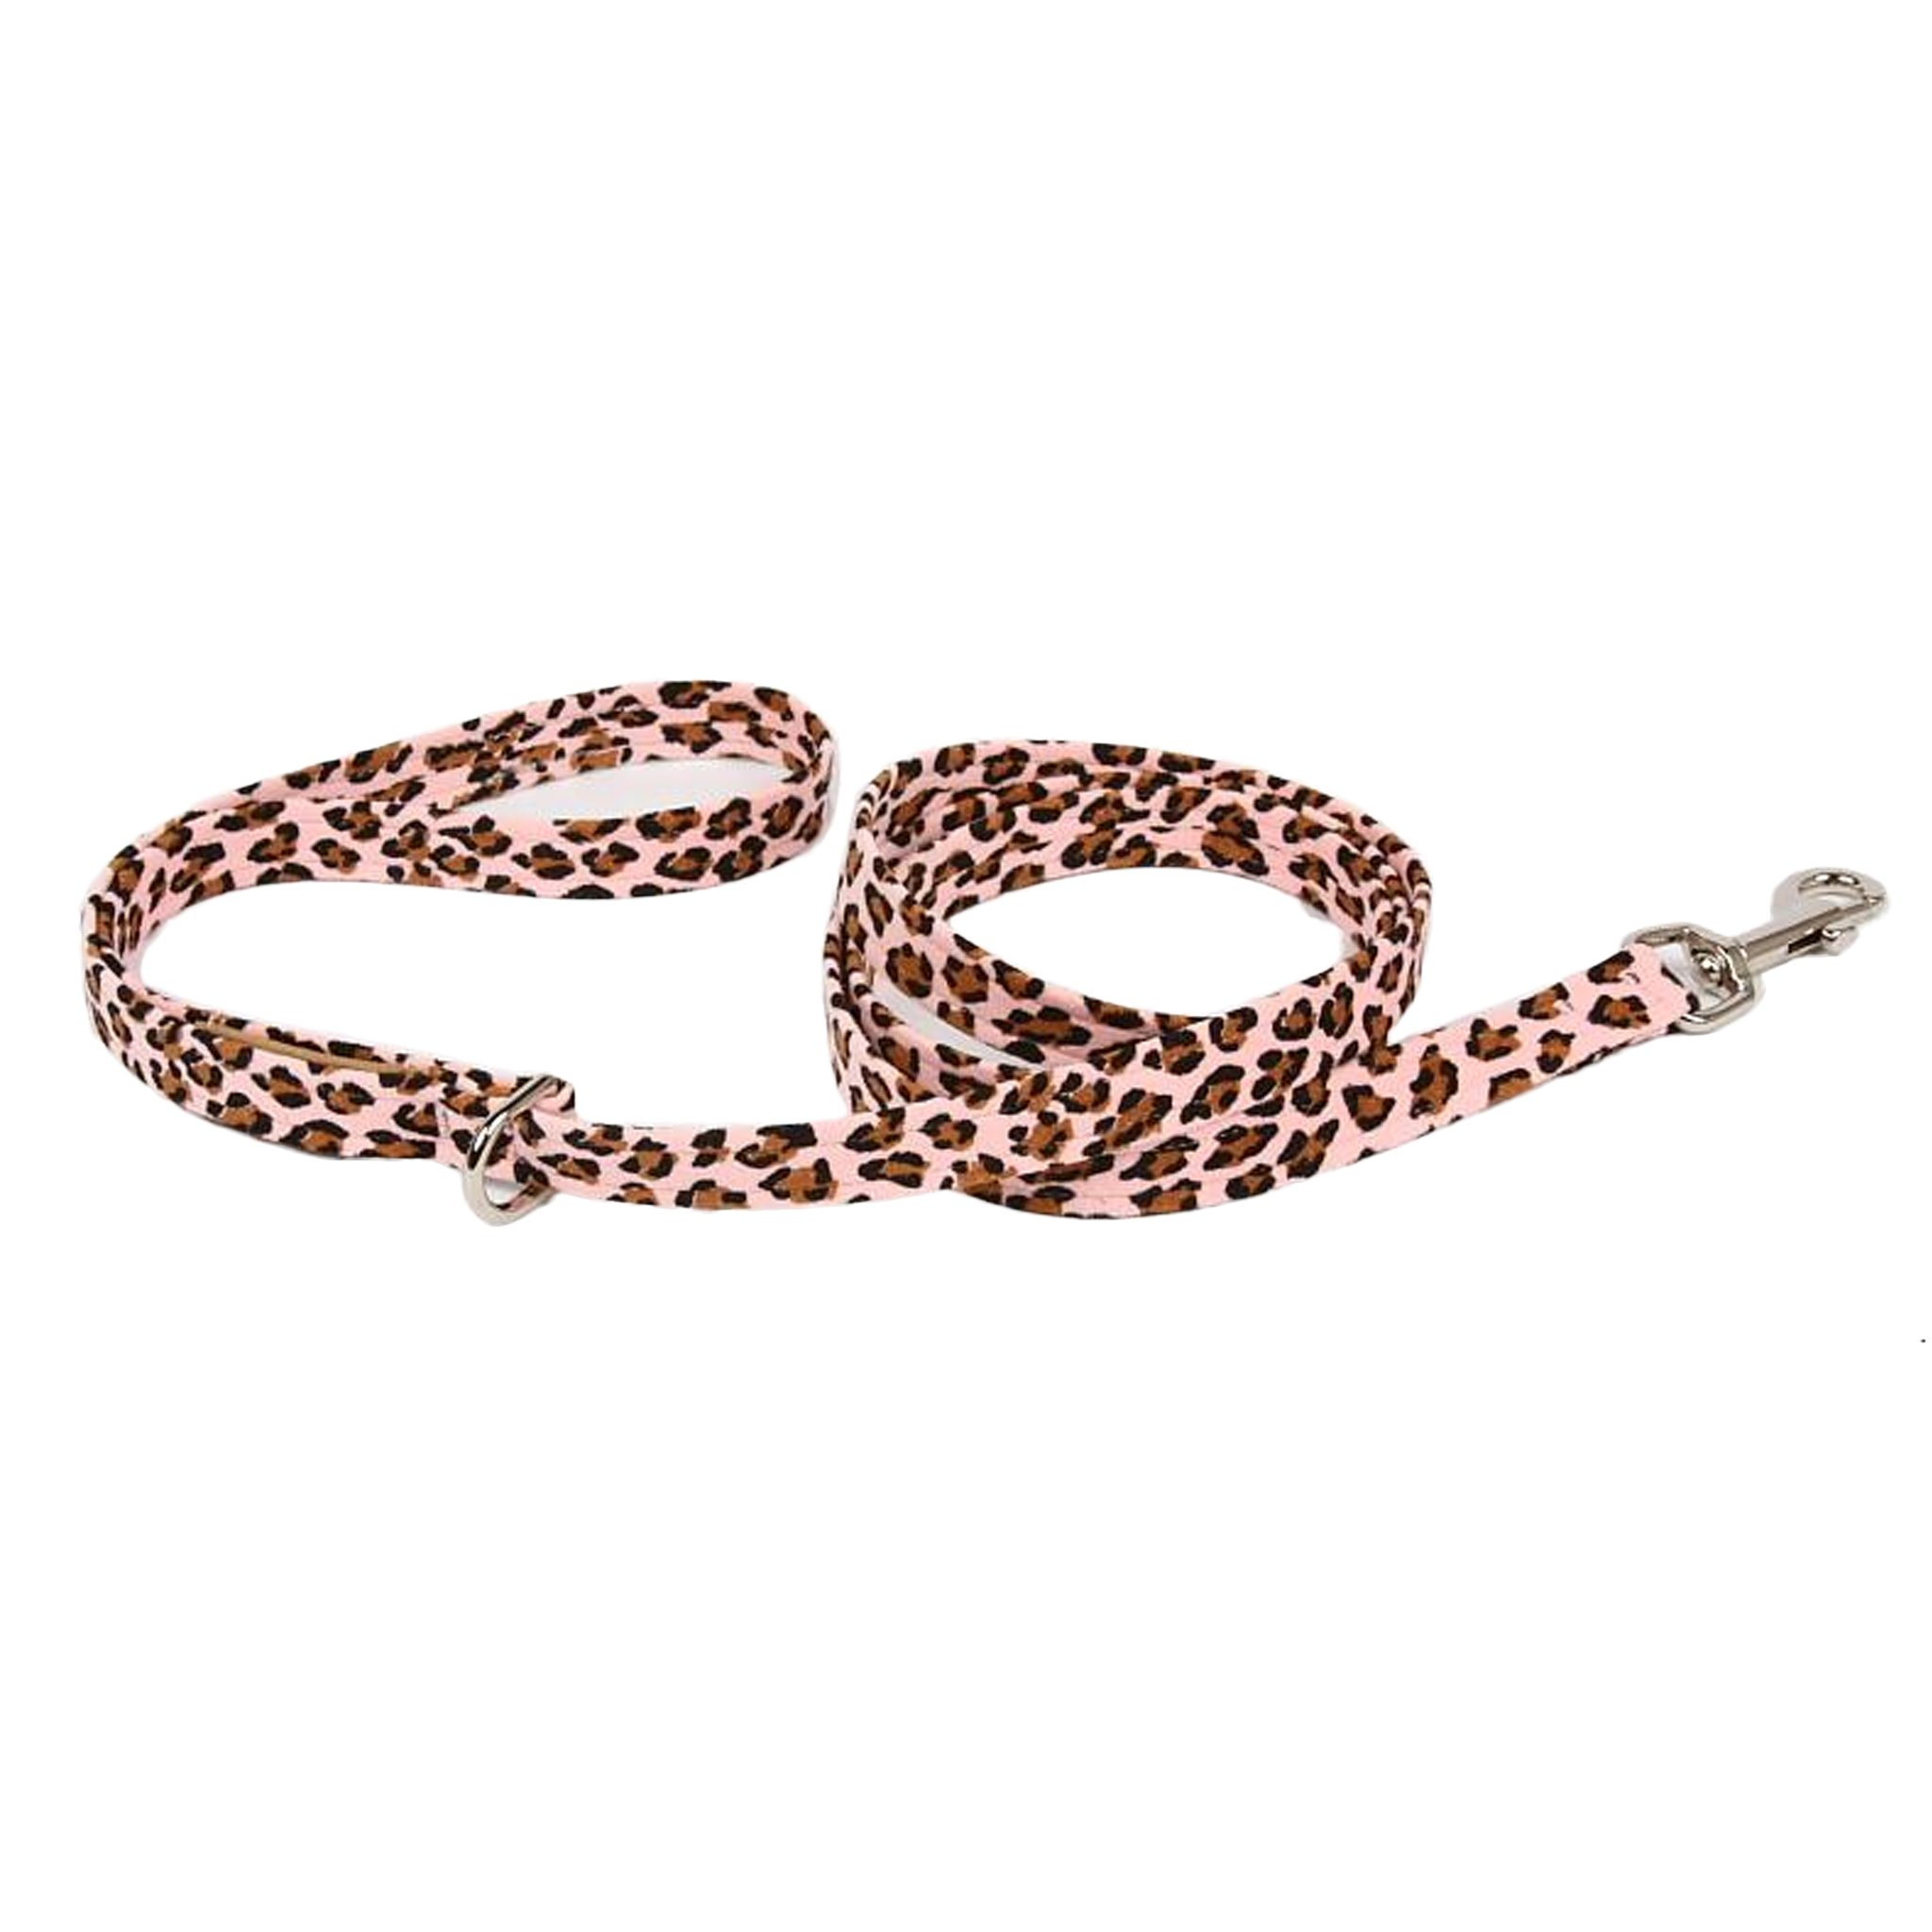 Cheetah Couture Leash